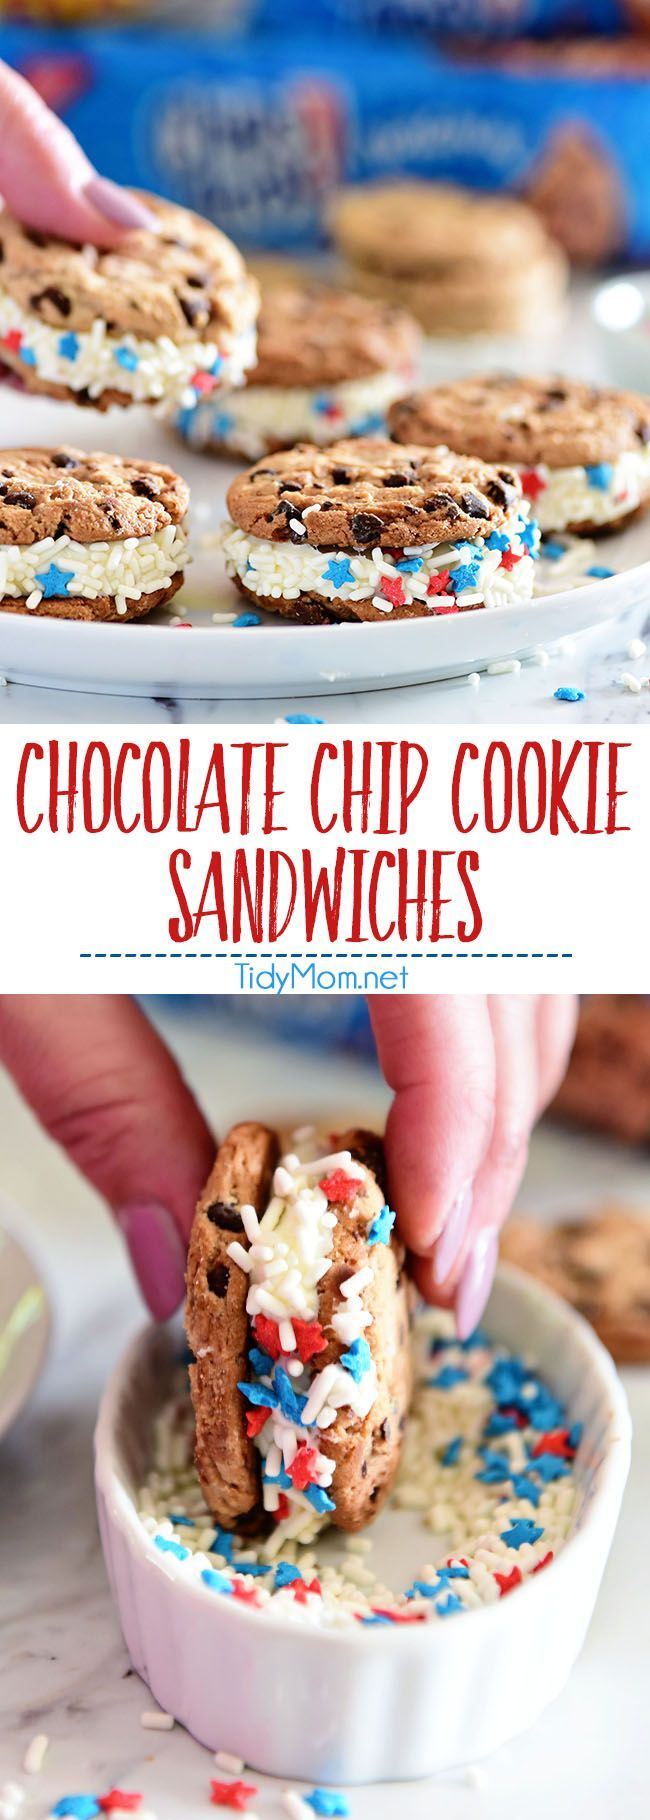 Easy Chocolate Chip Cookie Sandwich. Chips Ahoy Cookies, canned frosting and sprinkles are all you need for a quick fun party treat they will all love! Details and recipe for No-Bake Raspberry Cheesecake with Chocolate Chip Cookie Crust at TidyMom.net